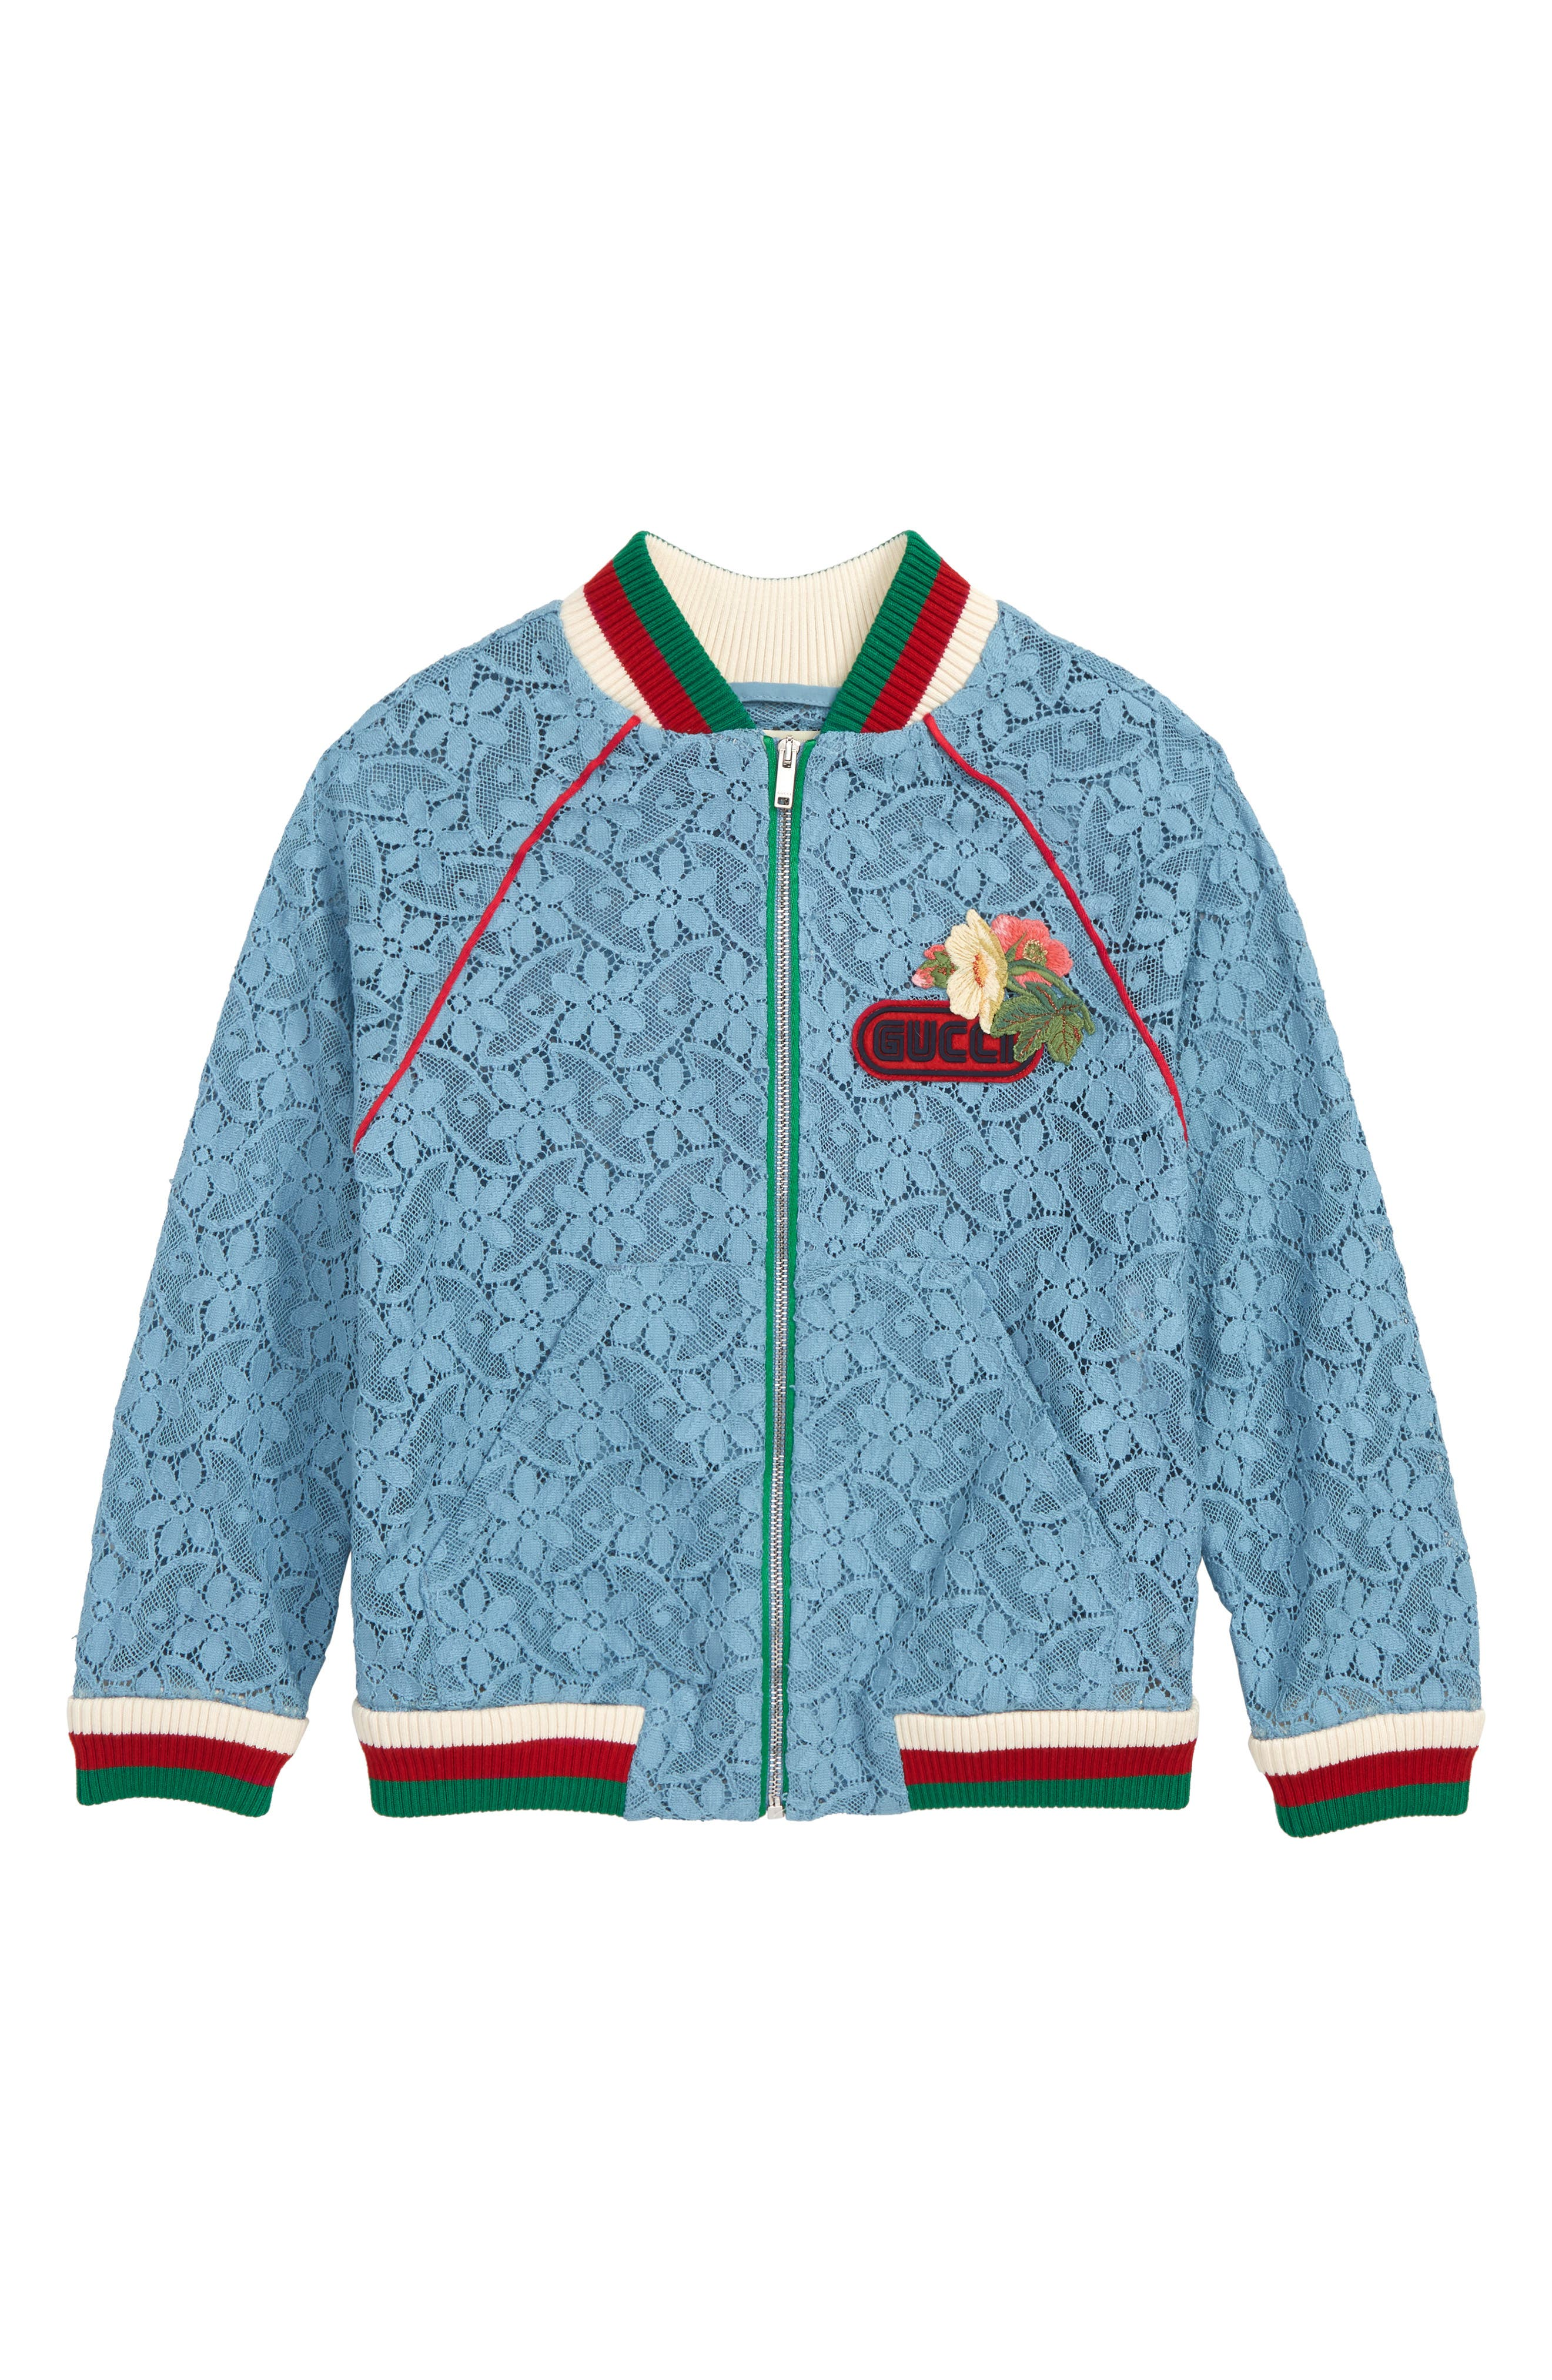 GUCCI Lace Bomber Jacket, Main, color, SEA CLEAR BLUE